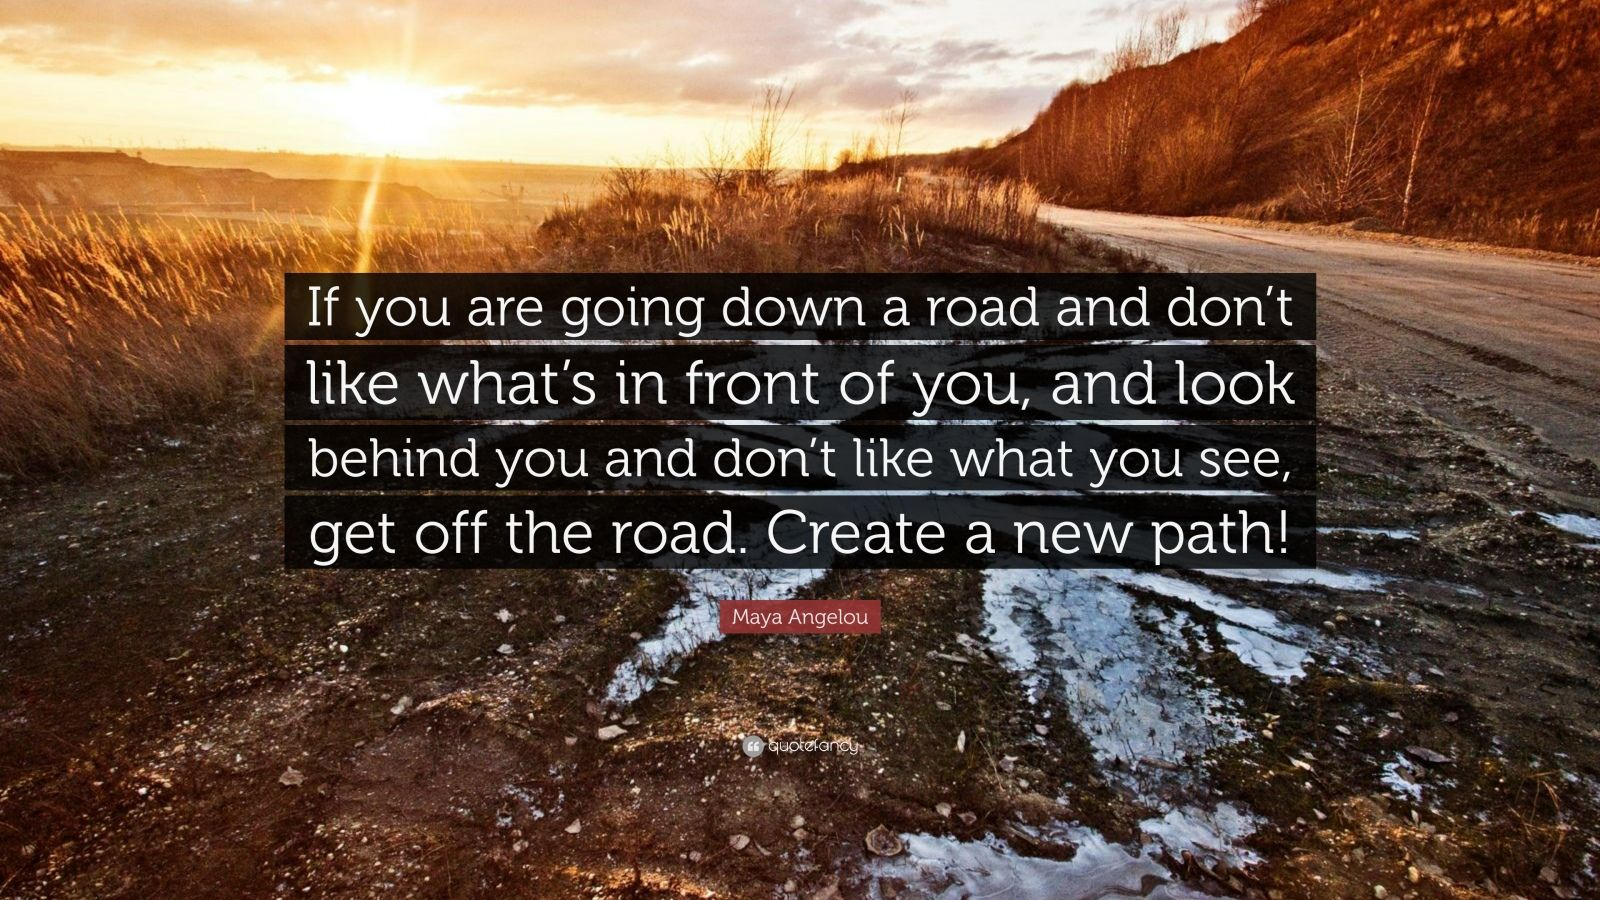 """Maya Angelou Quote: """"If you are going down a road and don't like what's in front of you, and look behind you and don't like what you see, get off the road. Create a new path!"""""""